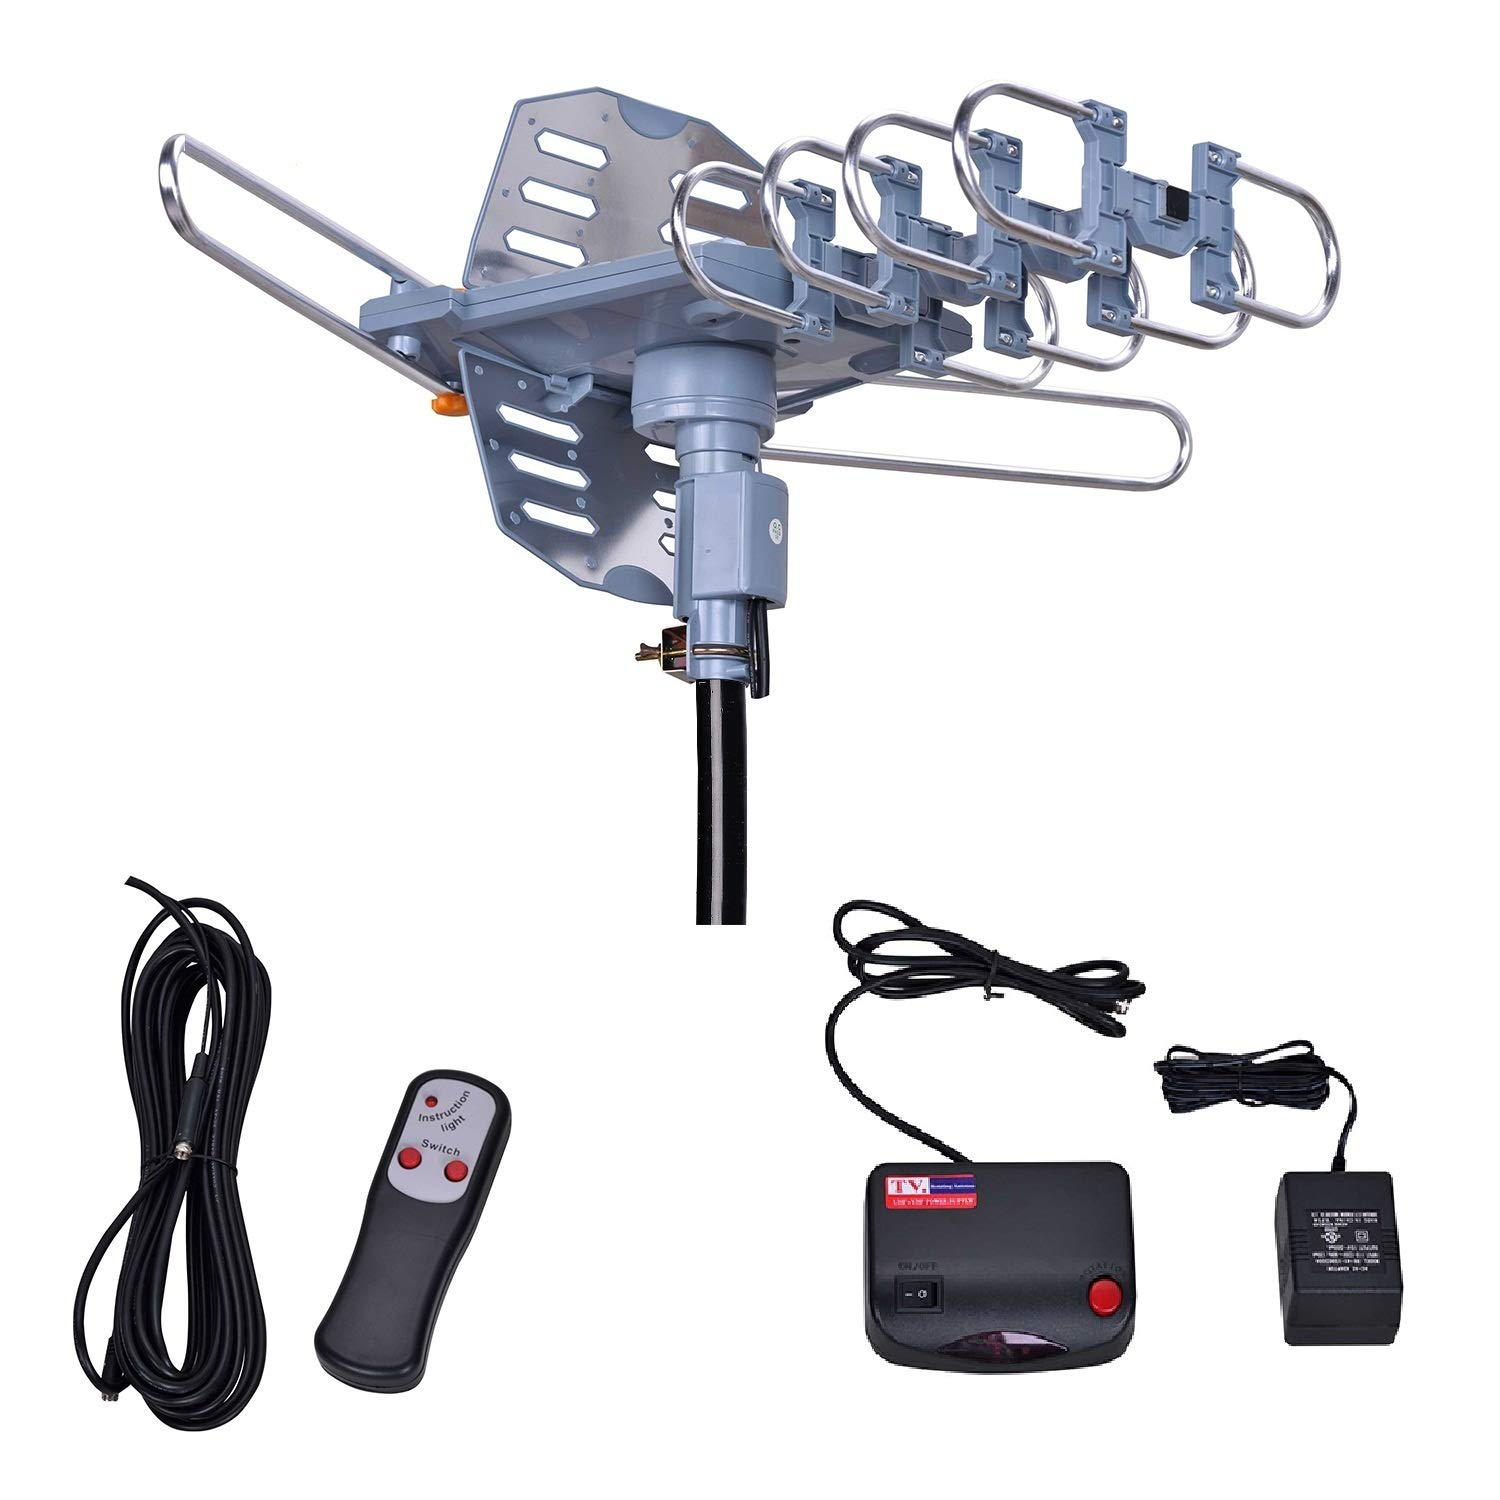 Will Brands 150+Miles Range Outdoor Amplified Digital TV Antenna-4K/1080p High Reception 40FT RG6 Cable-Motorized 360Degree Rotation Wireless Remote Control with Snap On Installation-2TVs Function by Will Brands